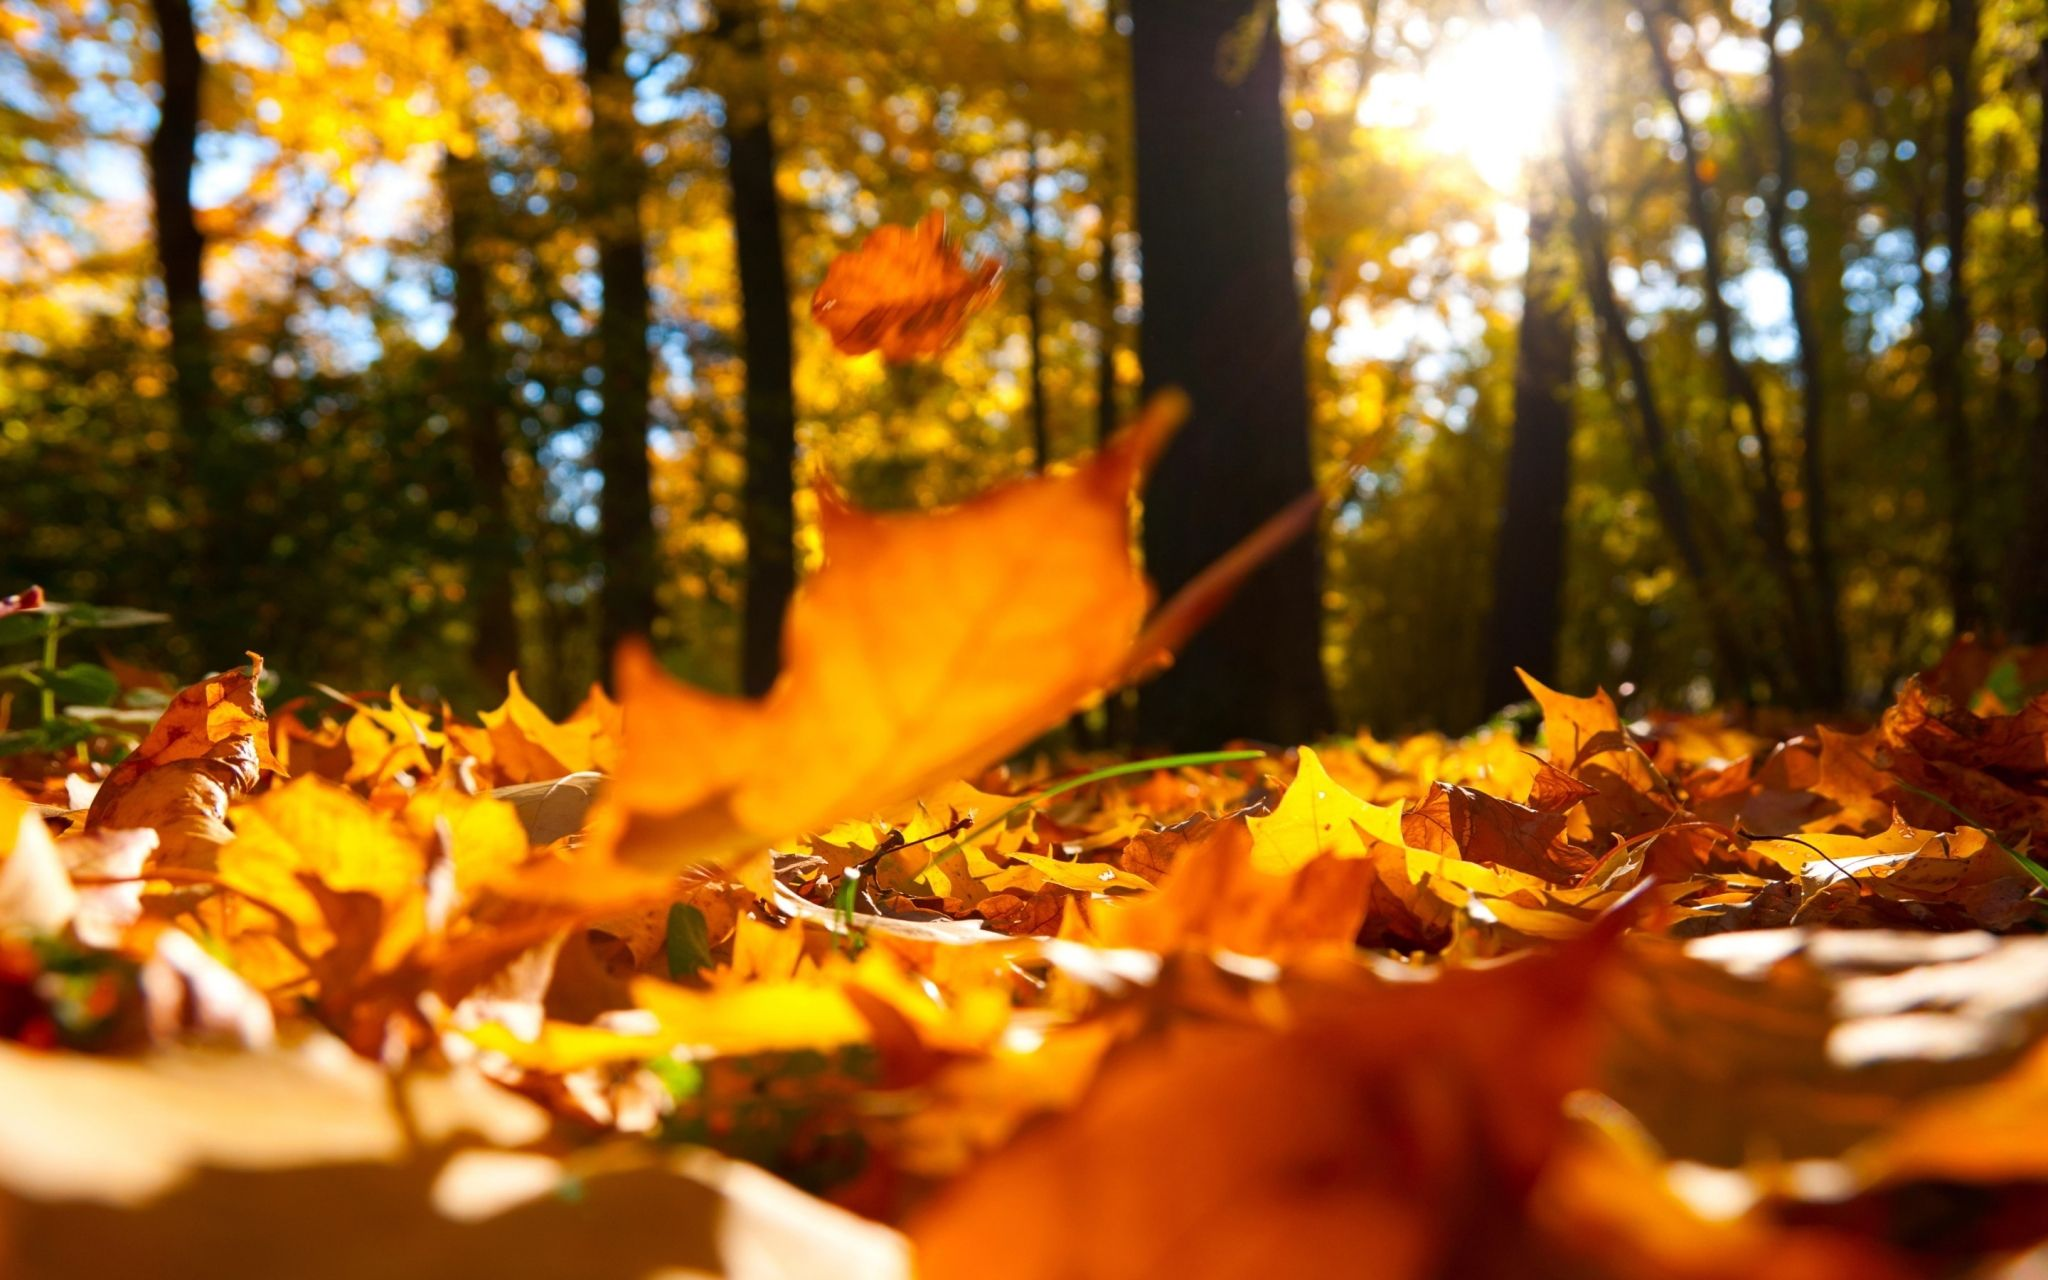 Autumn Hd Widescreen Wallpapers For Laptop Autumn Leaves Wallpaper Laptop Wallpaper Autumn Photography